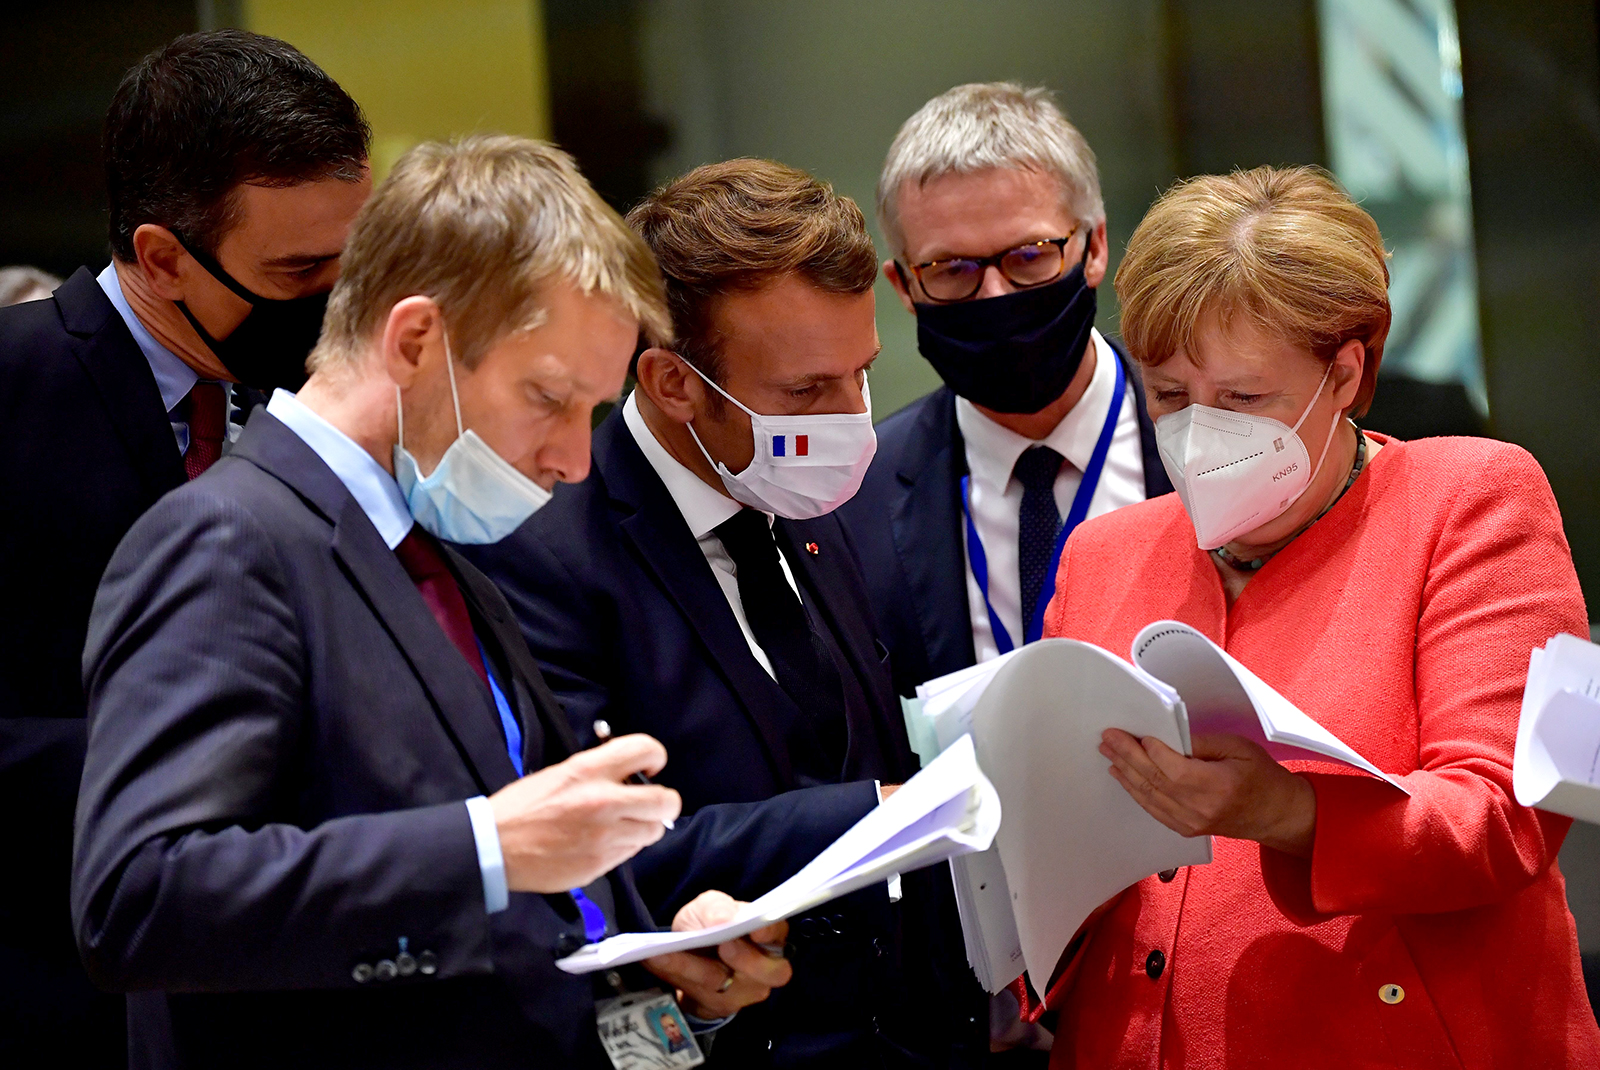 Spain's Prime Minister Pedro Sanchez (left), French President Emmanuel Macron (center) and German Chancellor Angela Merkel (right) look into documents during an EU summit in Brussels, Belgium on July 20.